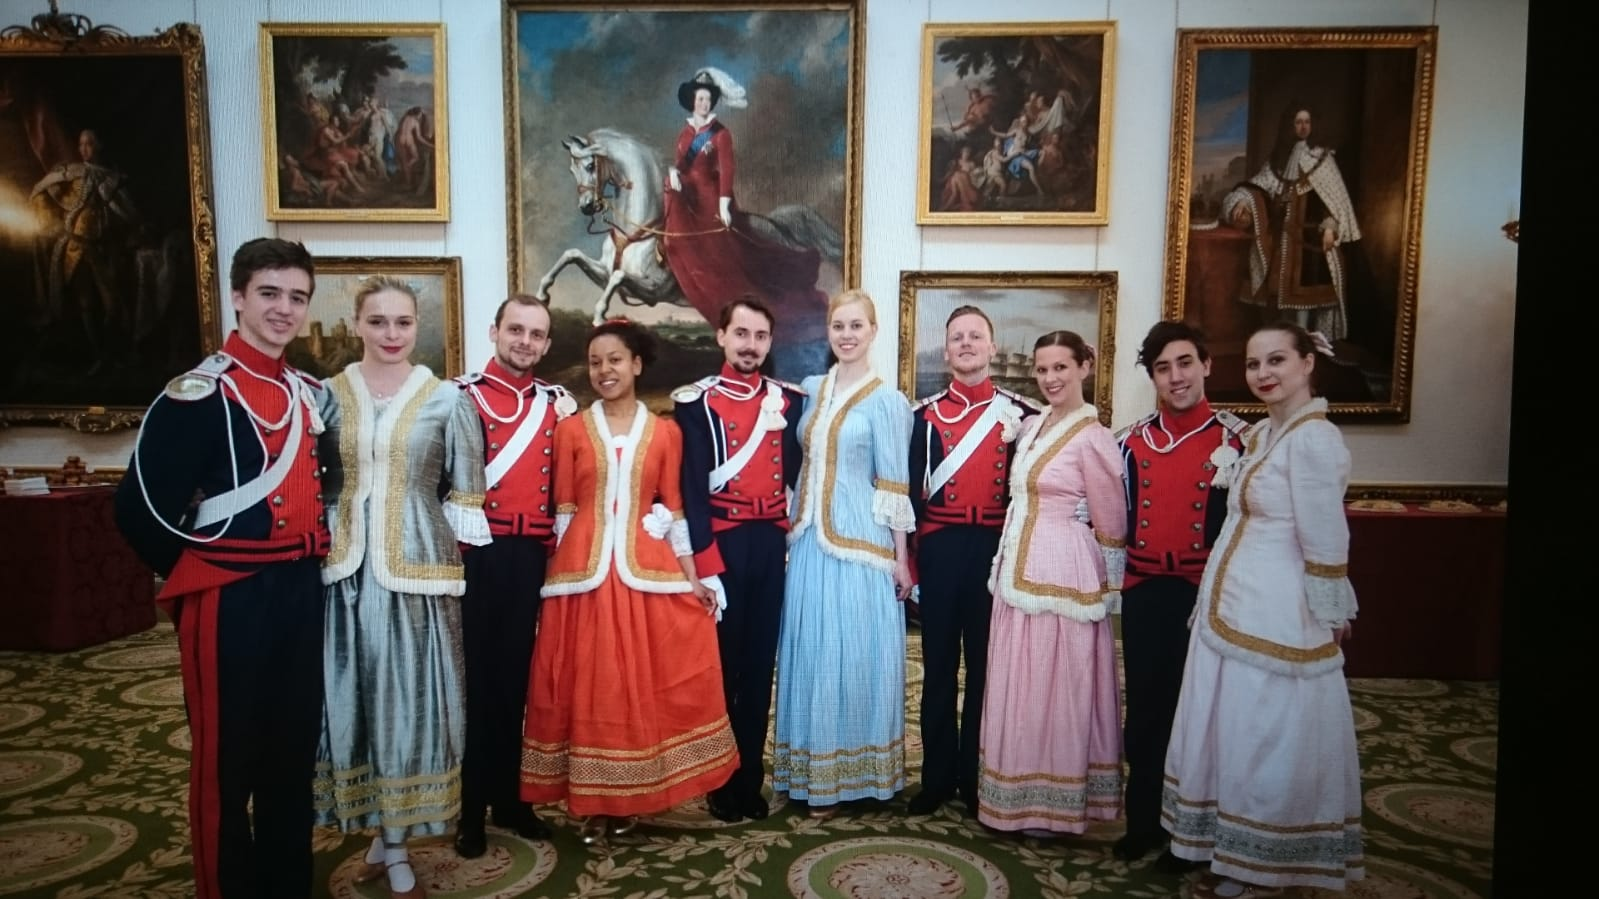 Mazury greeted guests dressed in the traditional Mazur & Polonez costumes